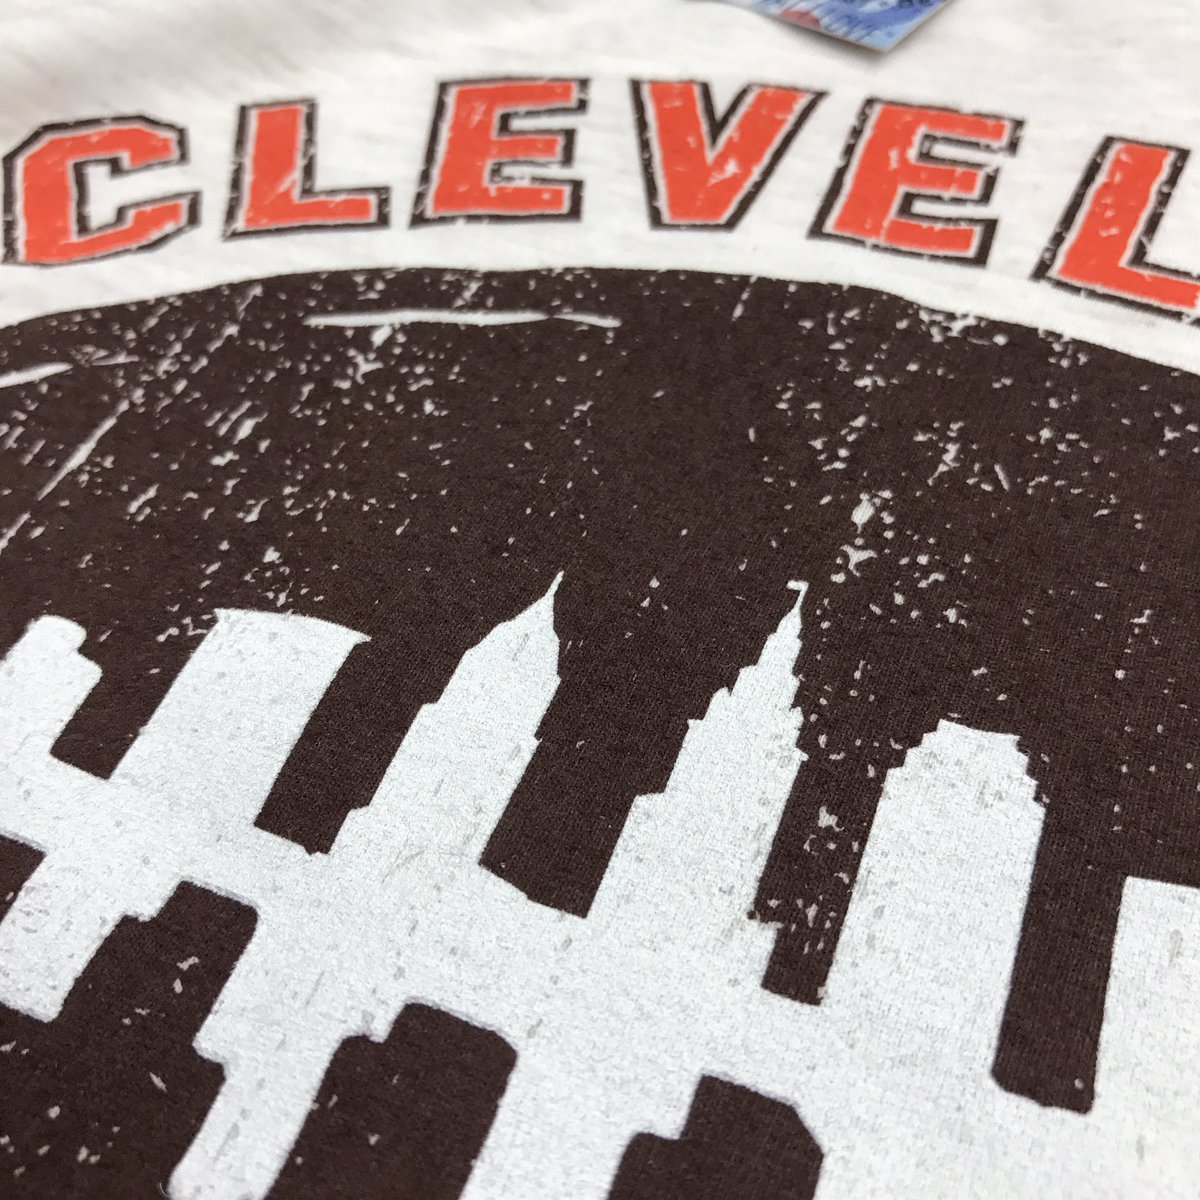 78558c3ec27 Check out a sneak peek of our brand new Cleveland Football Skyline design  dropping tomorrow morning online and in both stores! Available in unisex t  shirt ...